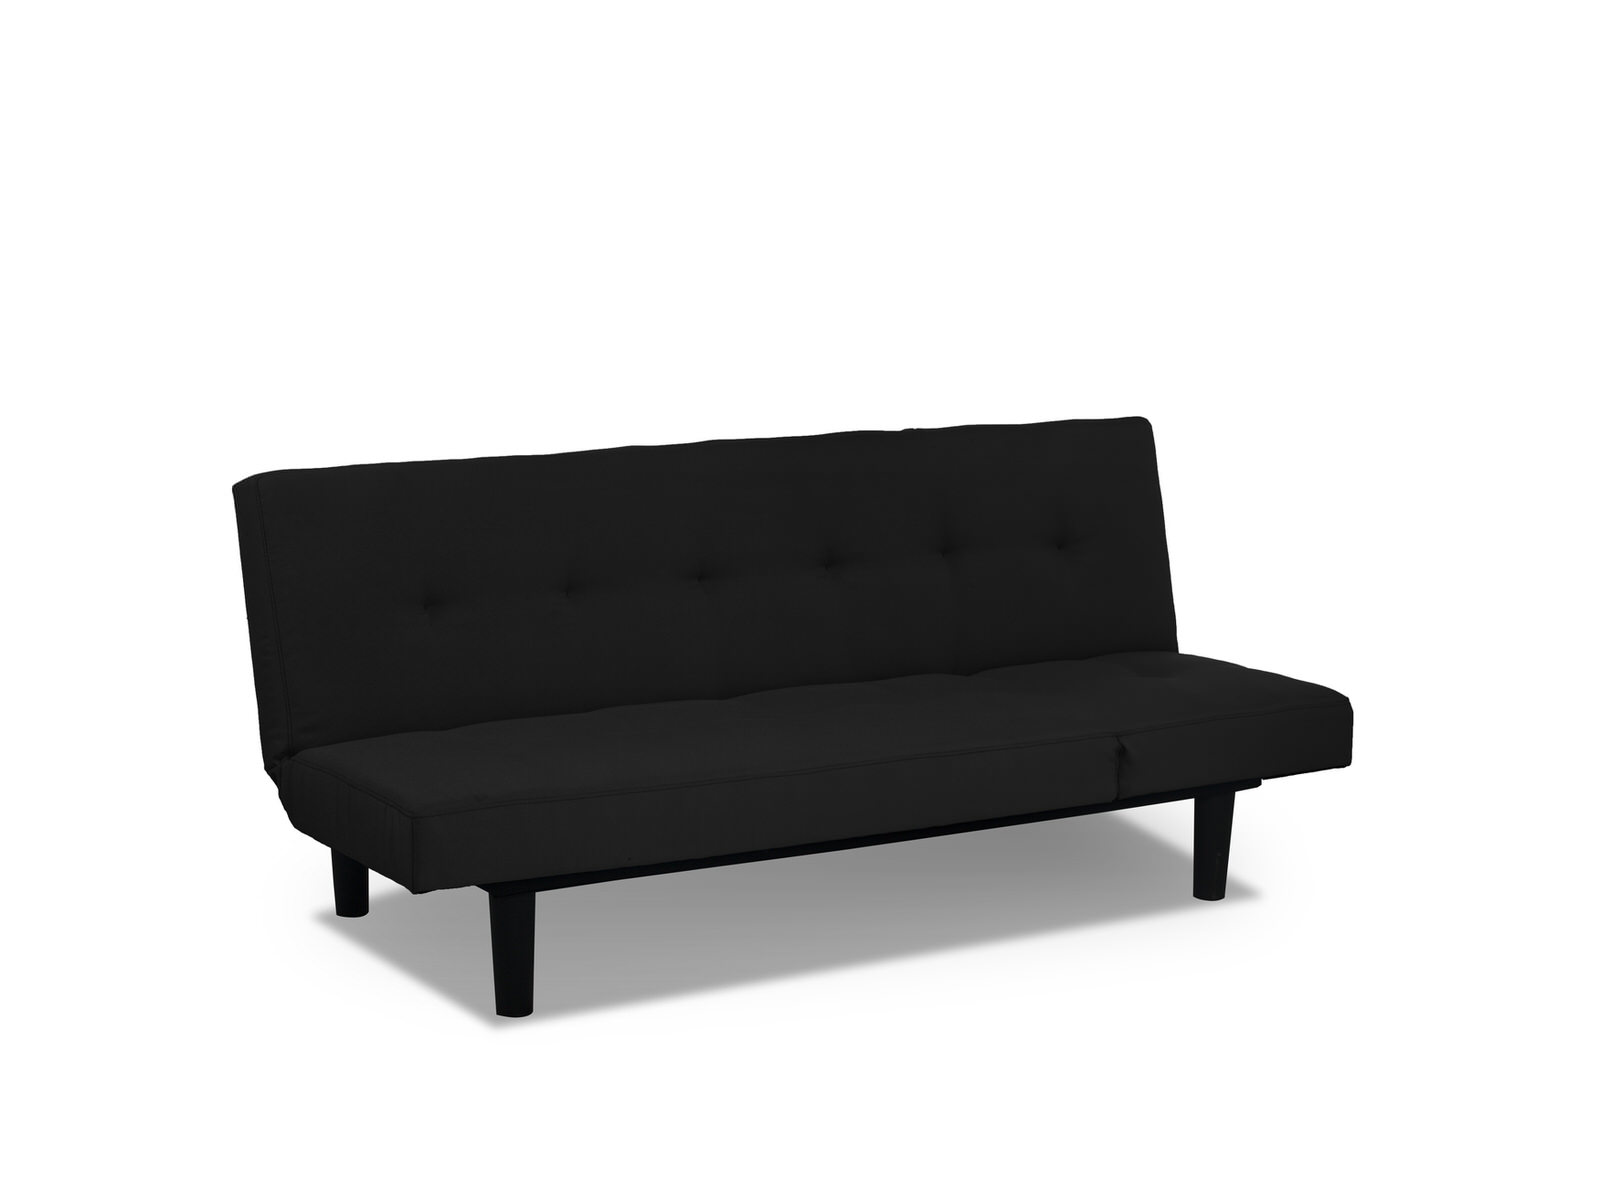 Mini Couch Mini Lounger Convertible Sofa Bed Black By Serta Lifestyle